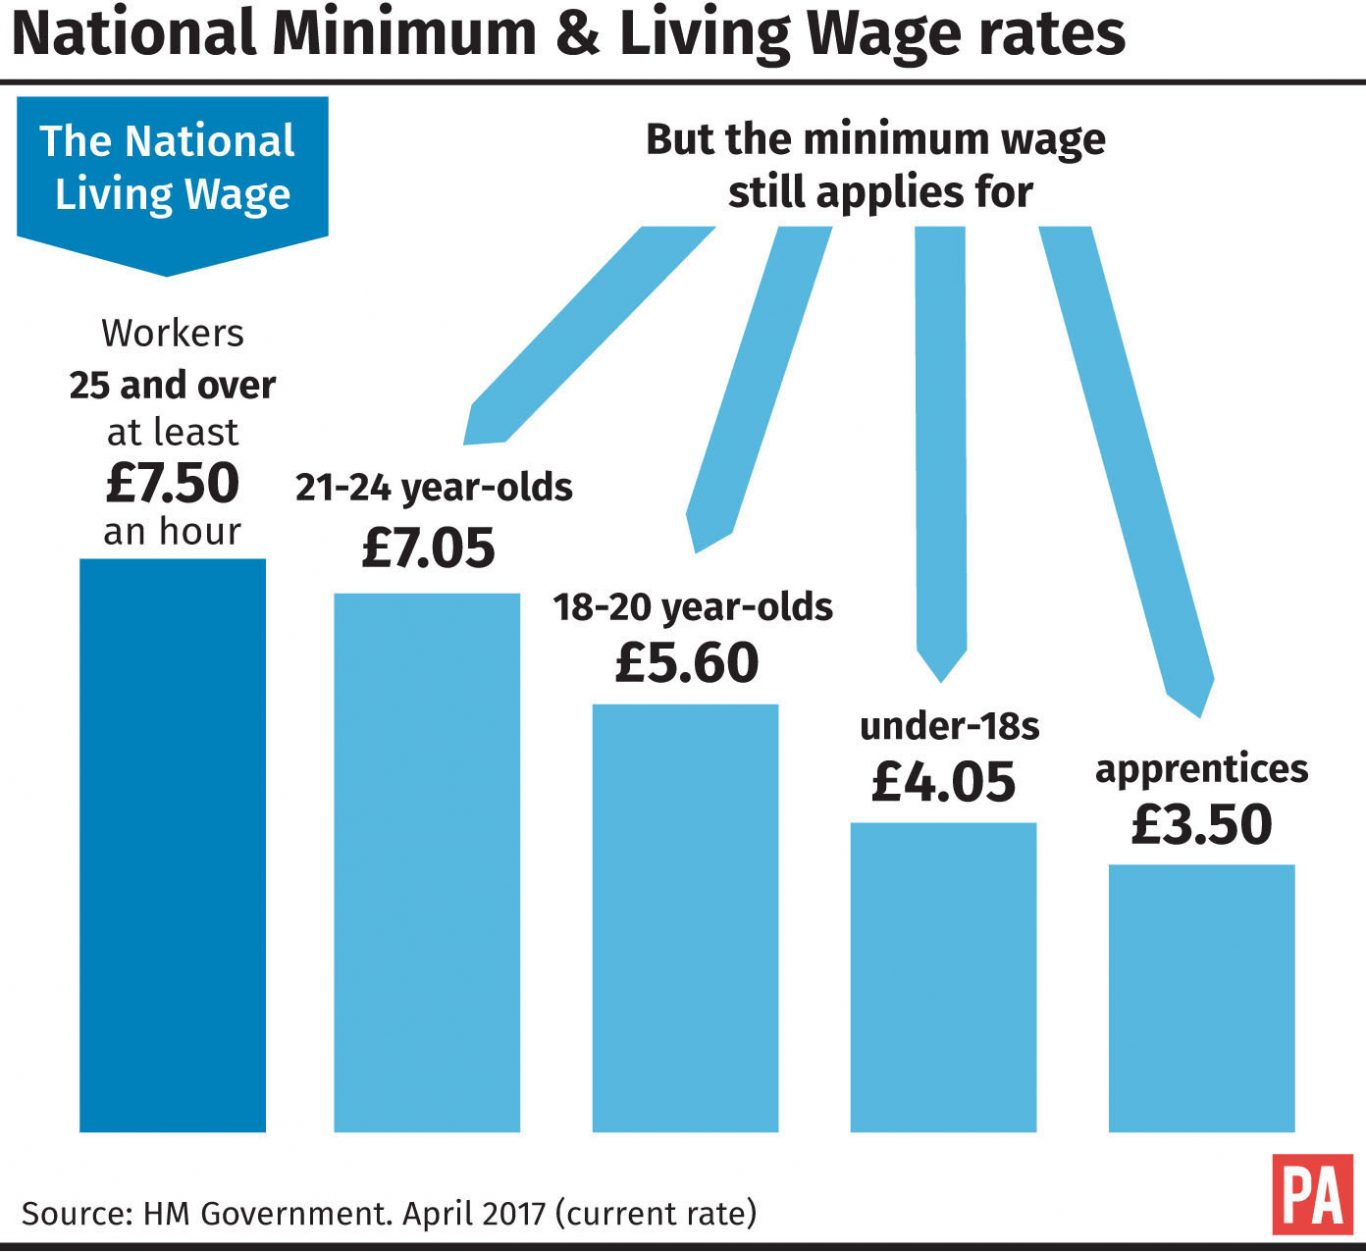 National Minimum and Living Wage rates